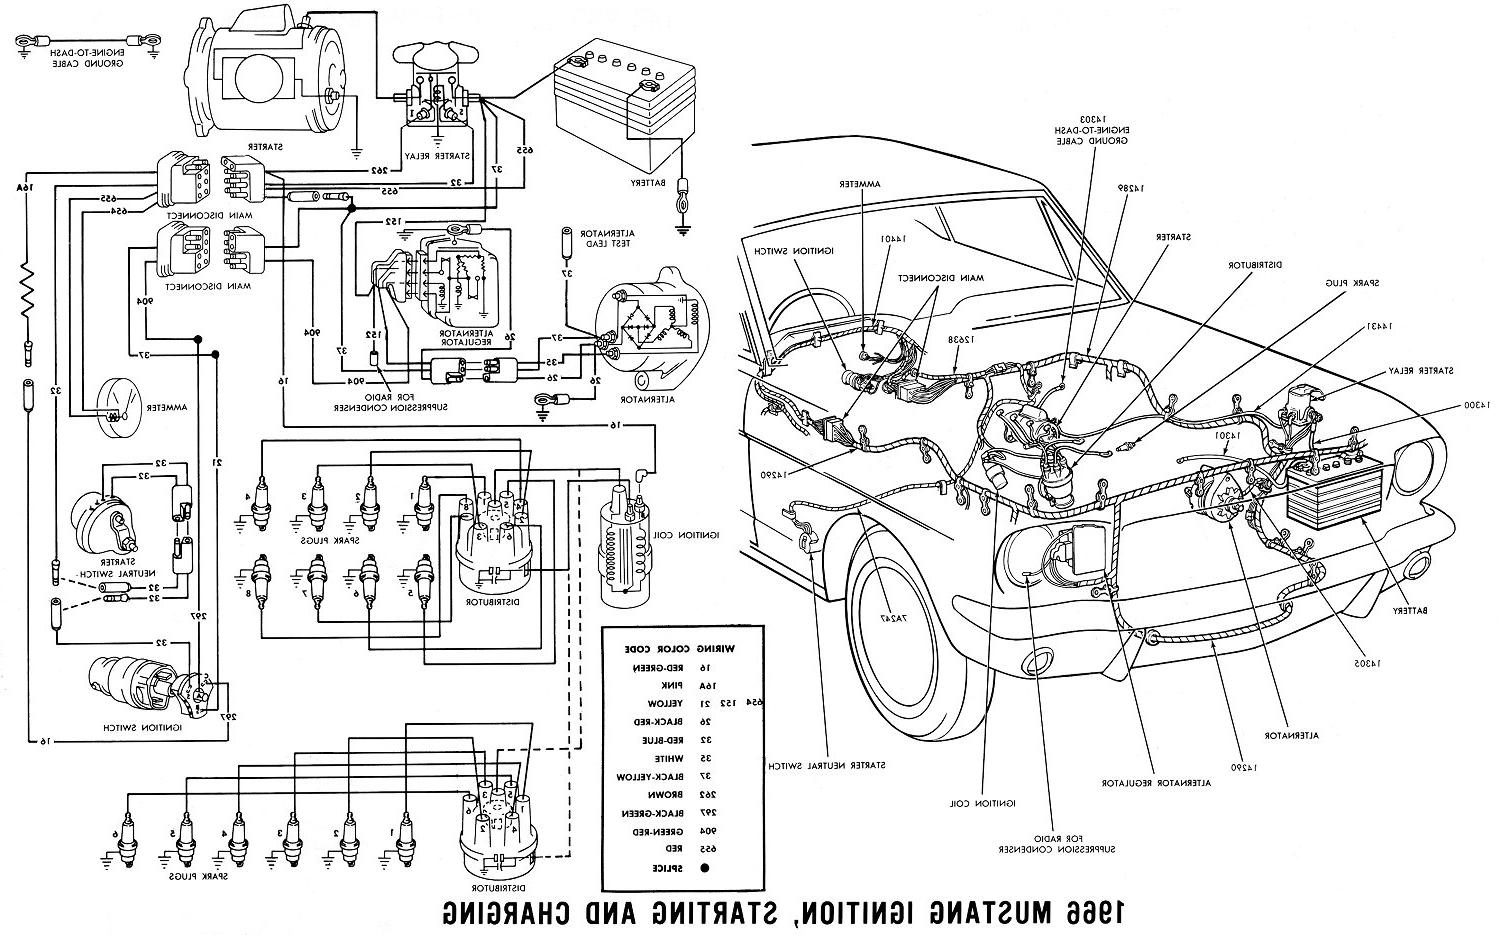 1968 Plymouth Gtx Wiring Diagram on mopar charger ii